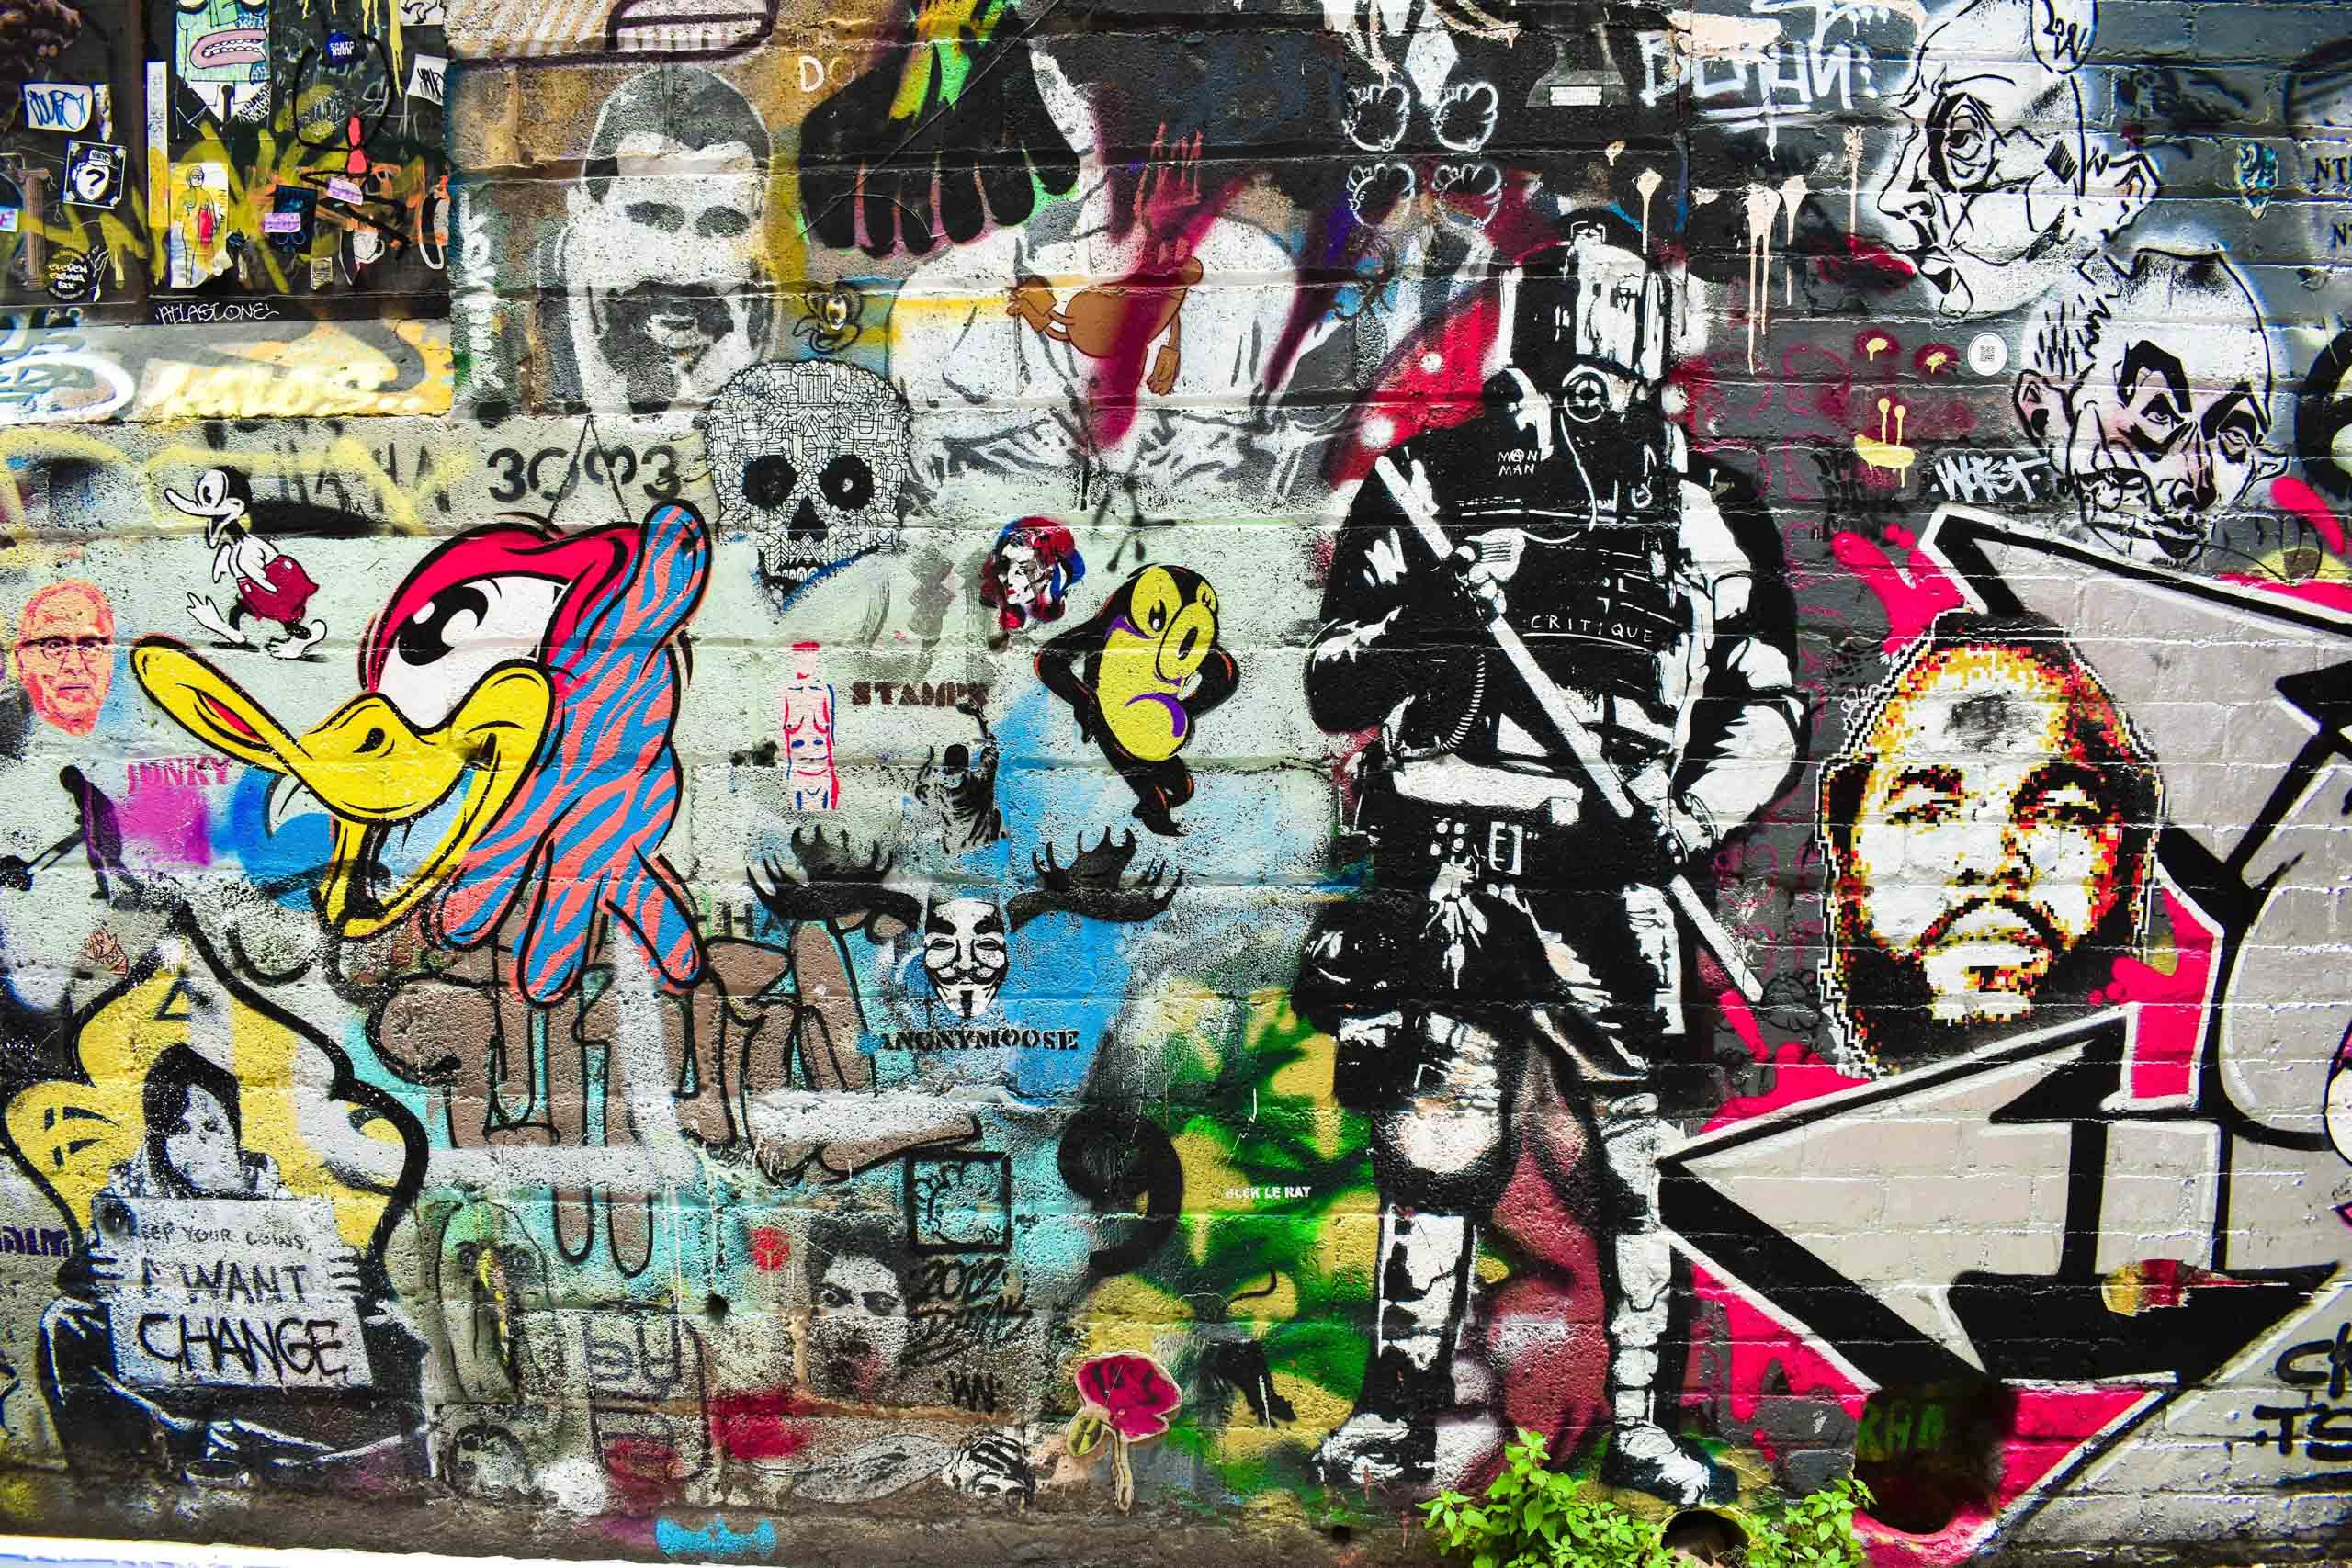 Melbourne Graffiti. Photo by Jase Ess on Unsplash